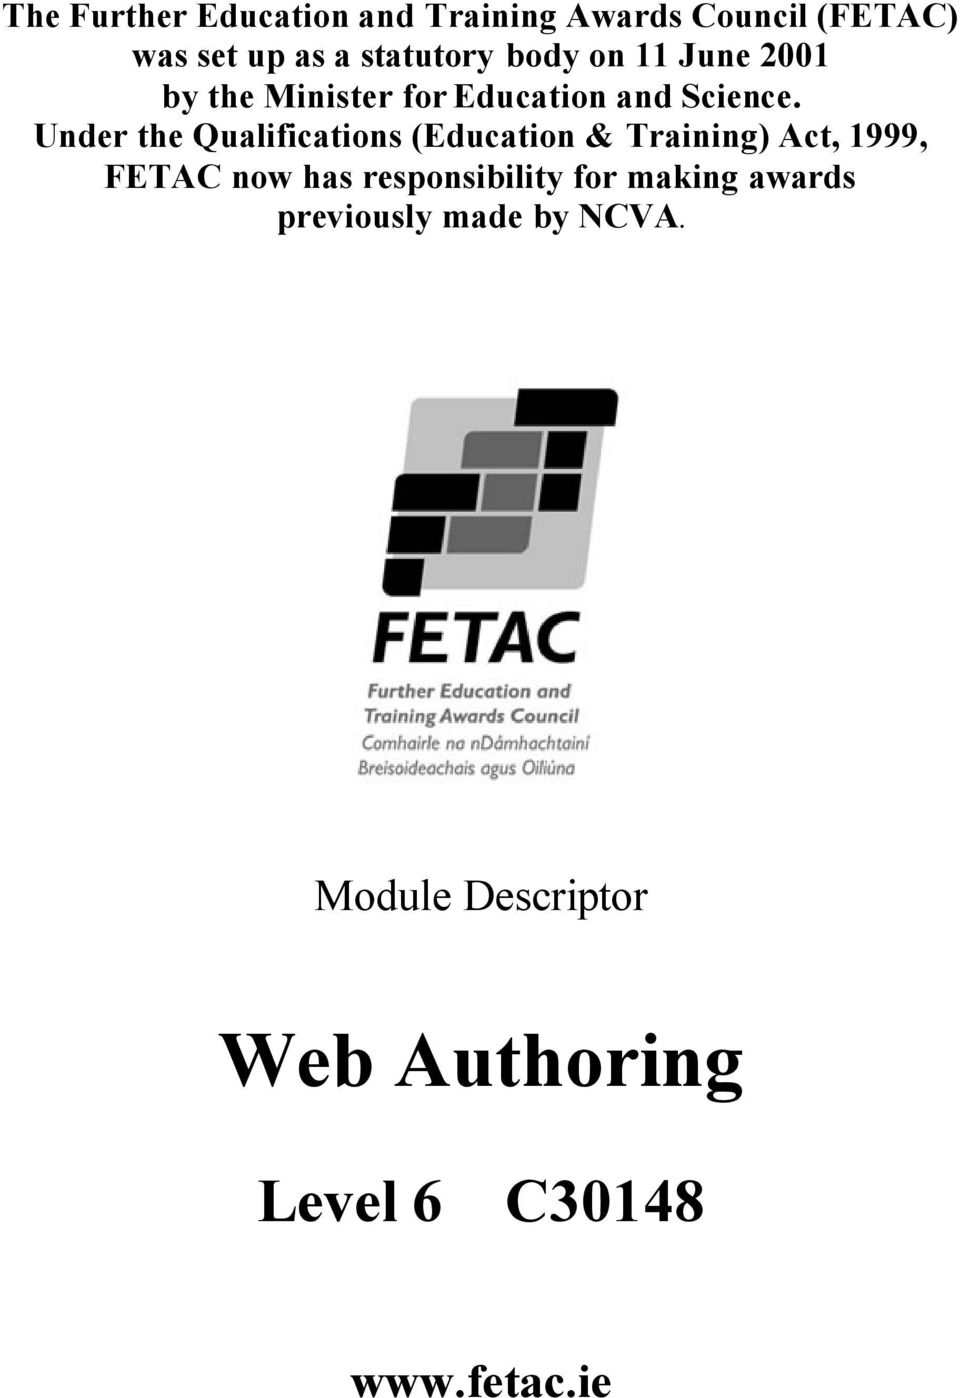 Under the Qualifications (Education & Training) Act, 1999, FETAC now has